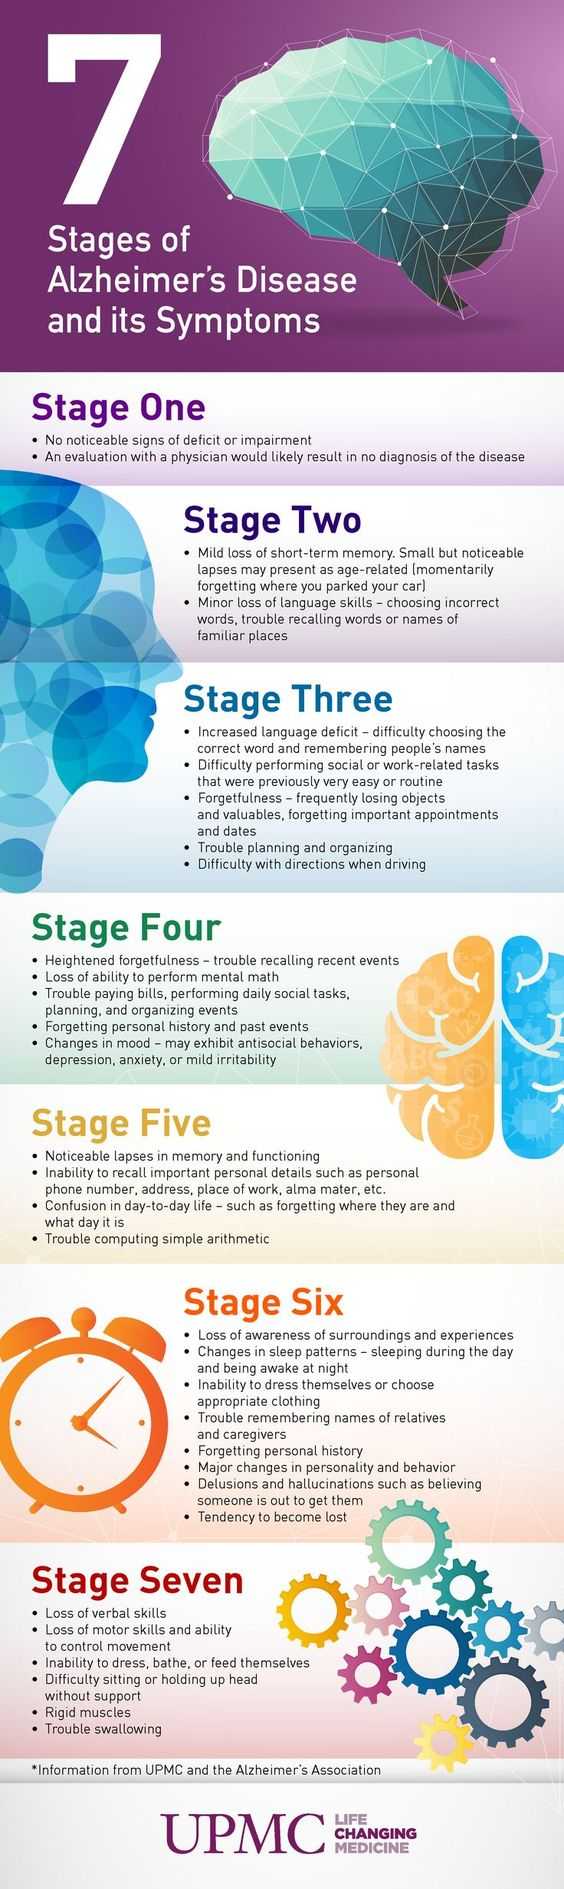 7 Stages.jpg